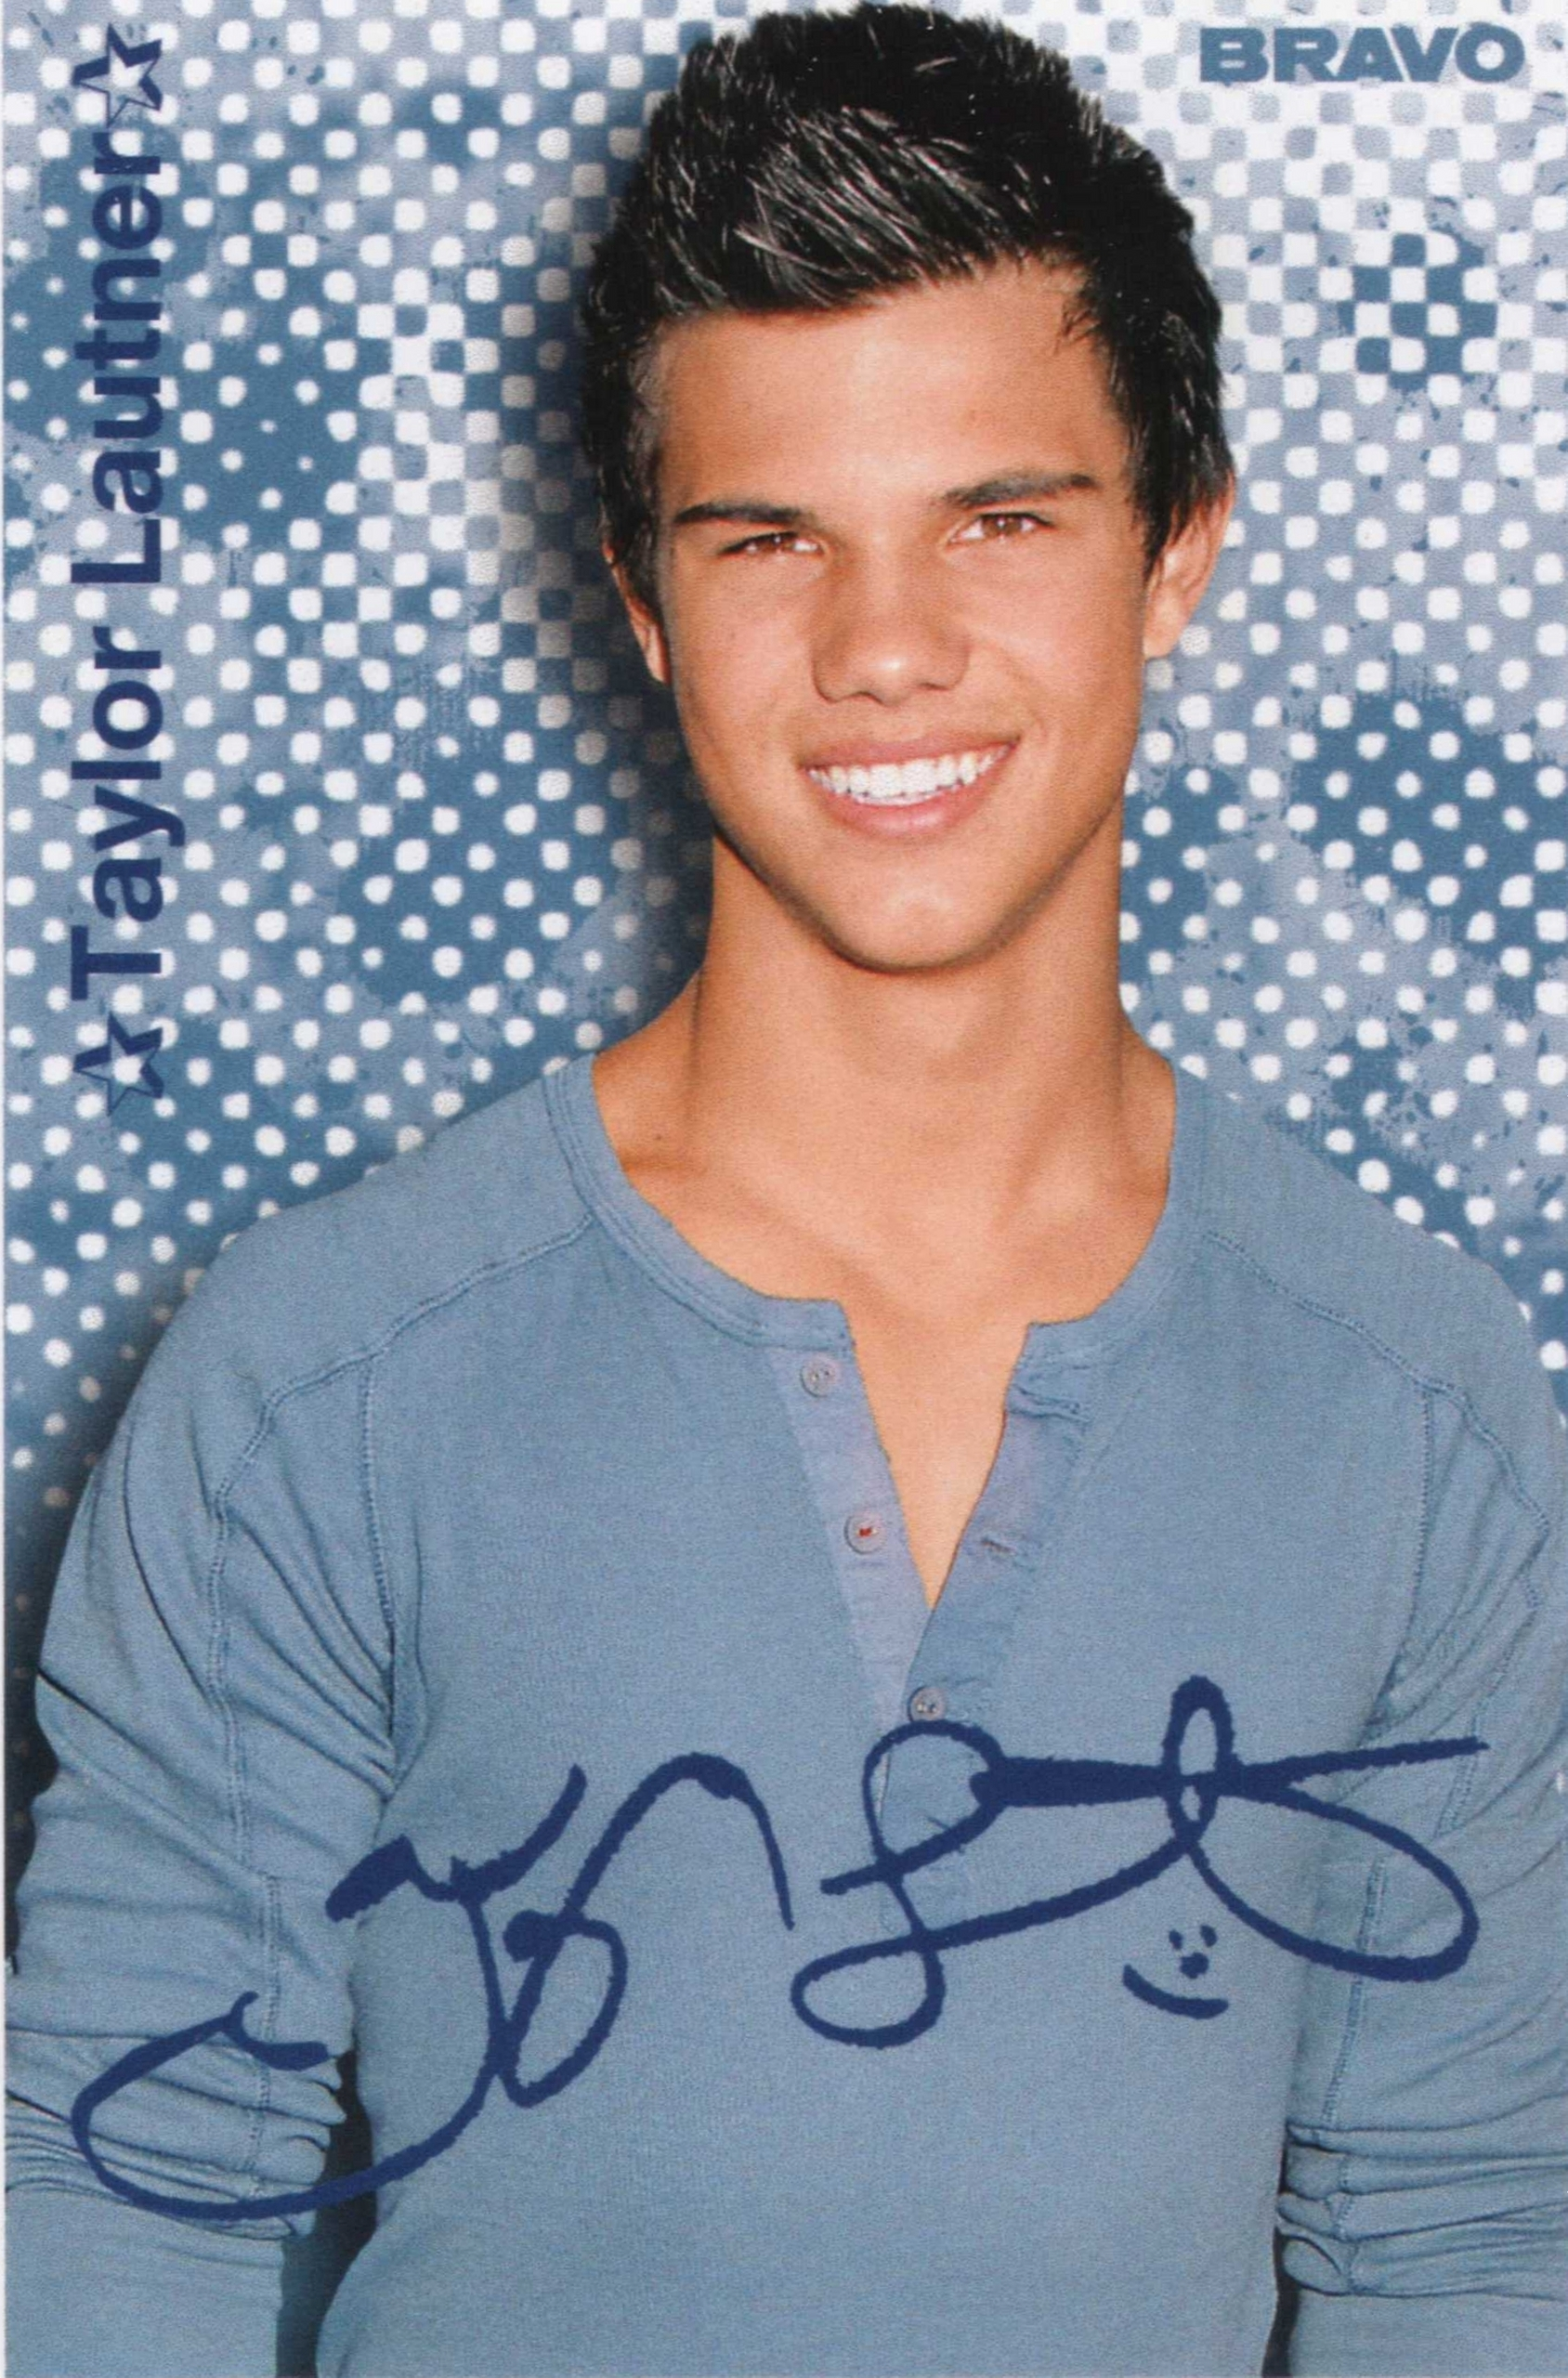 Taylor Lautner at Bravo (Germany)